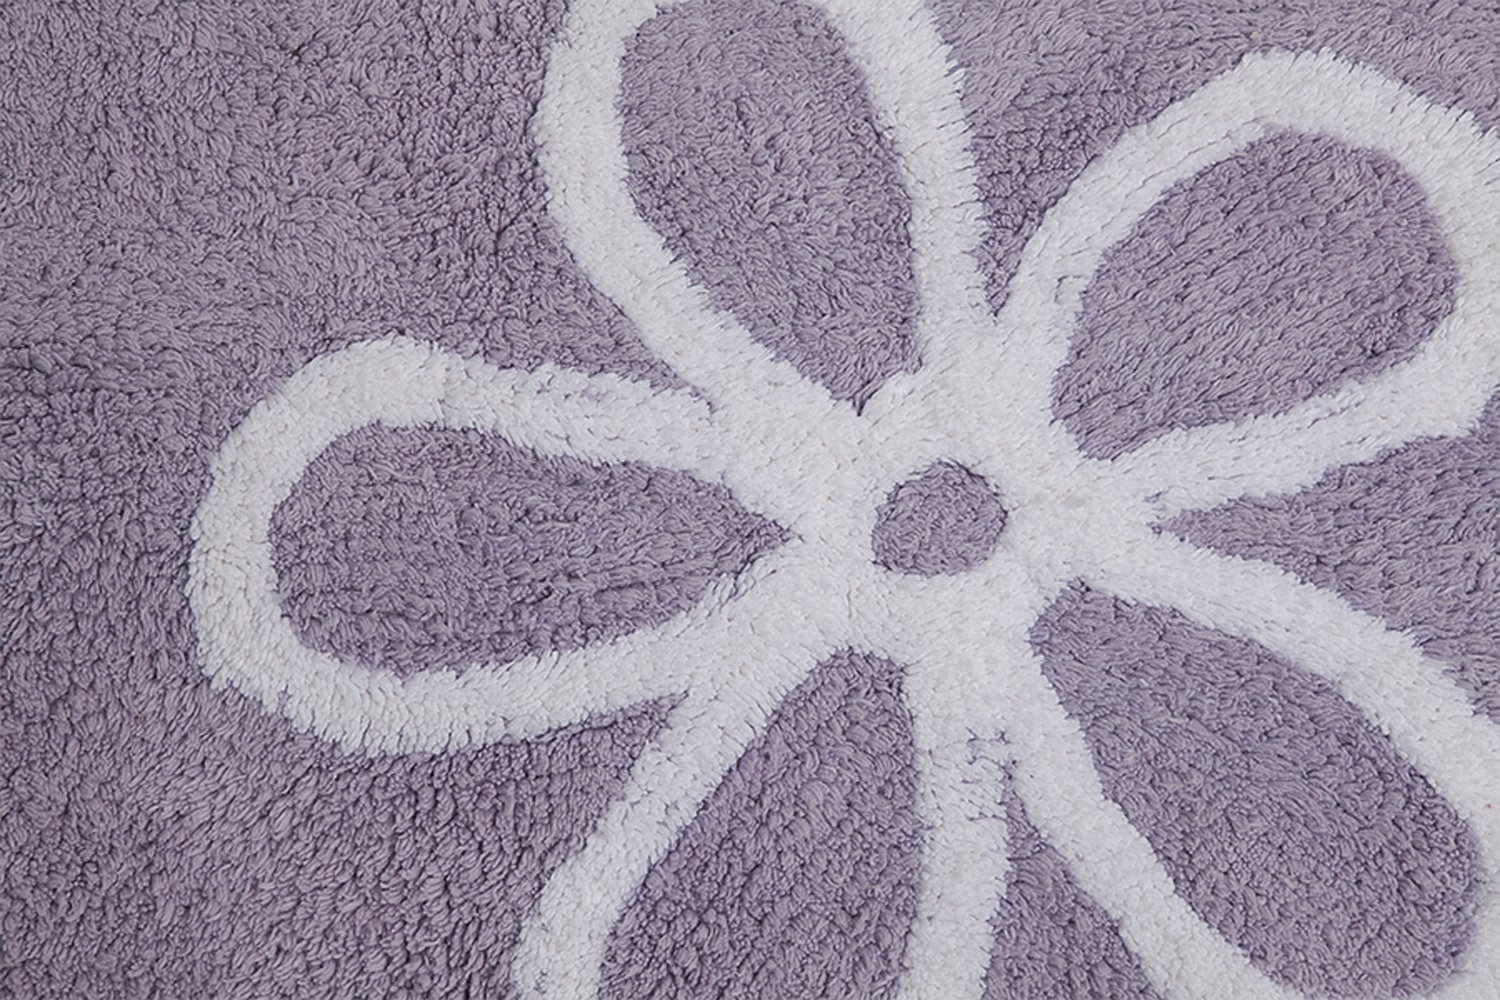 Lorena Canals Purple Flowers Washable Children's Rug - Machine Washable, Perfect for the Nursery - Handmade from 100% Natural Cotton and Non-Toxic Dyes by Lorena Canals (Image #3)